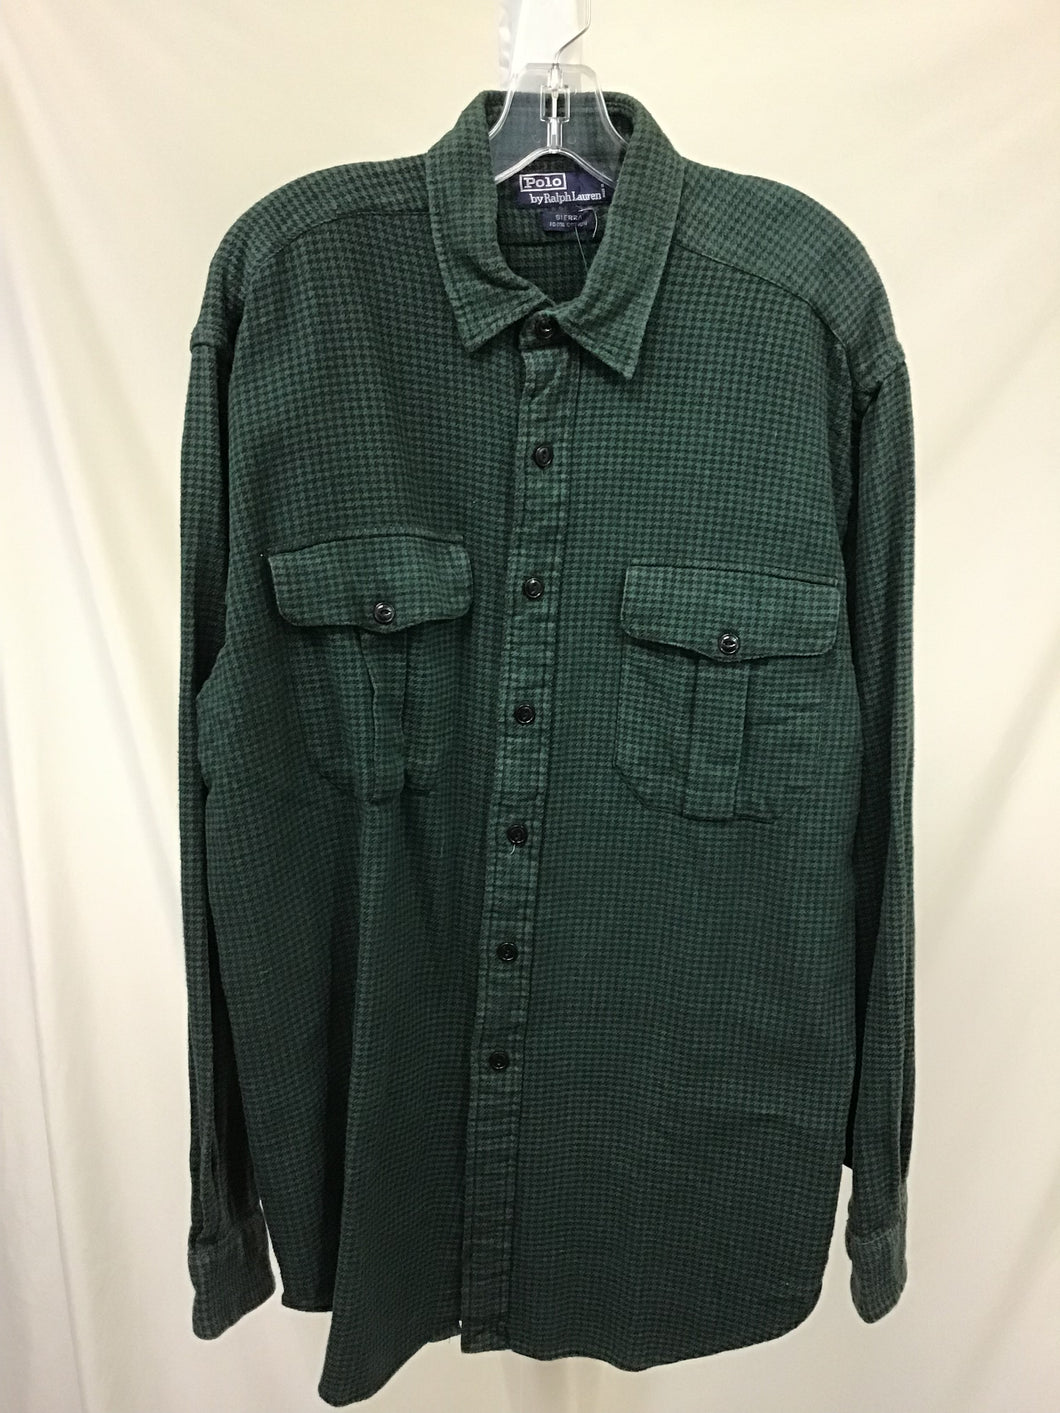 Polo Green and Black Flannel